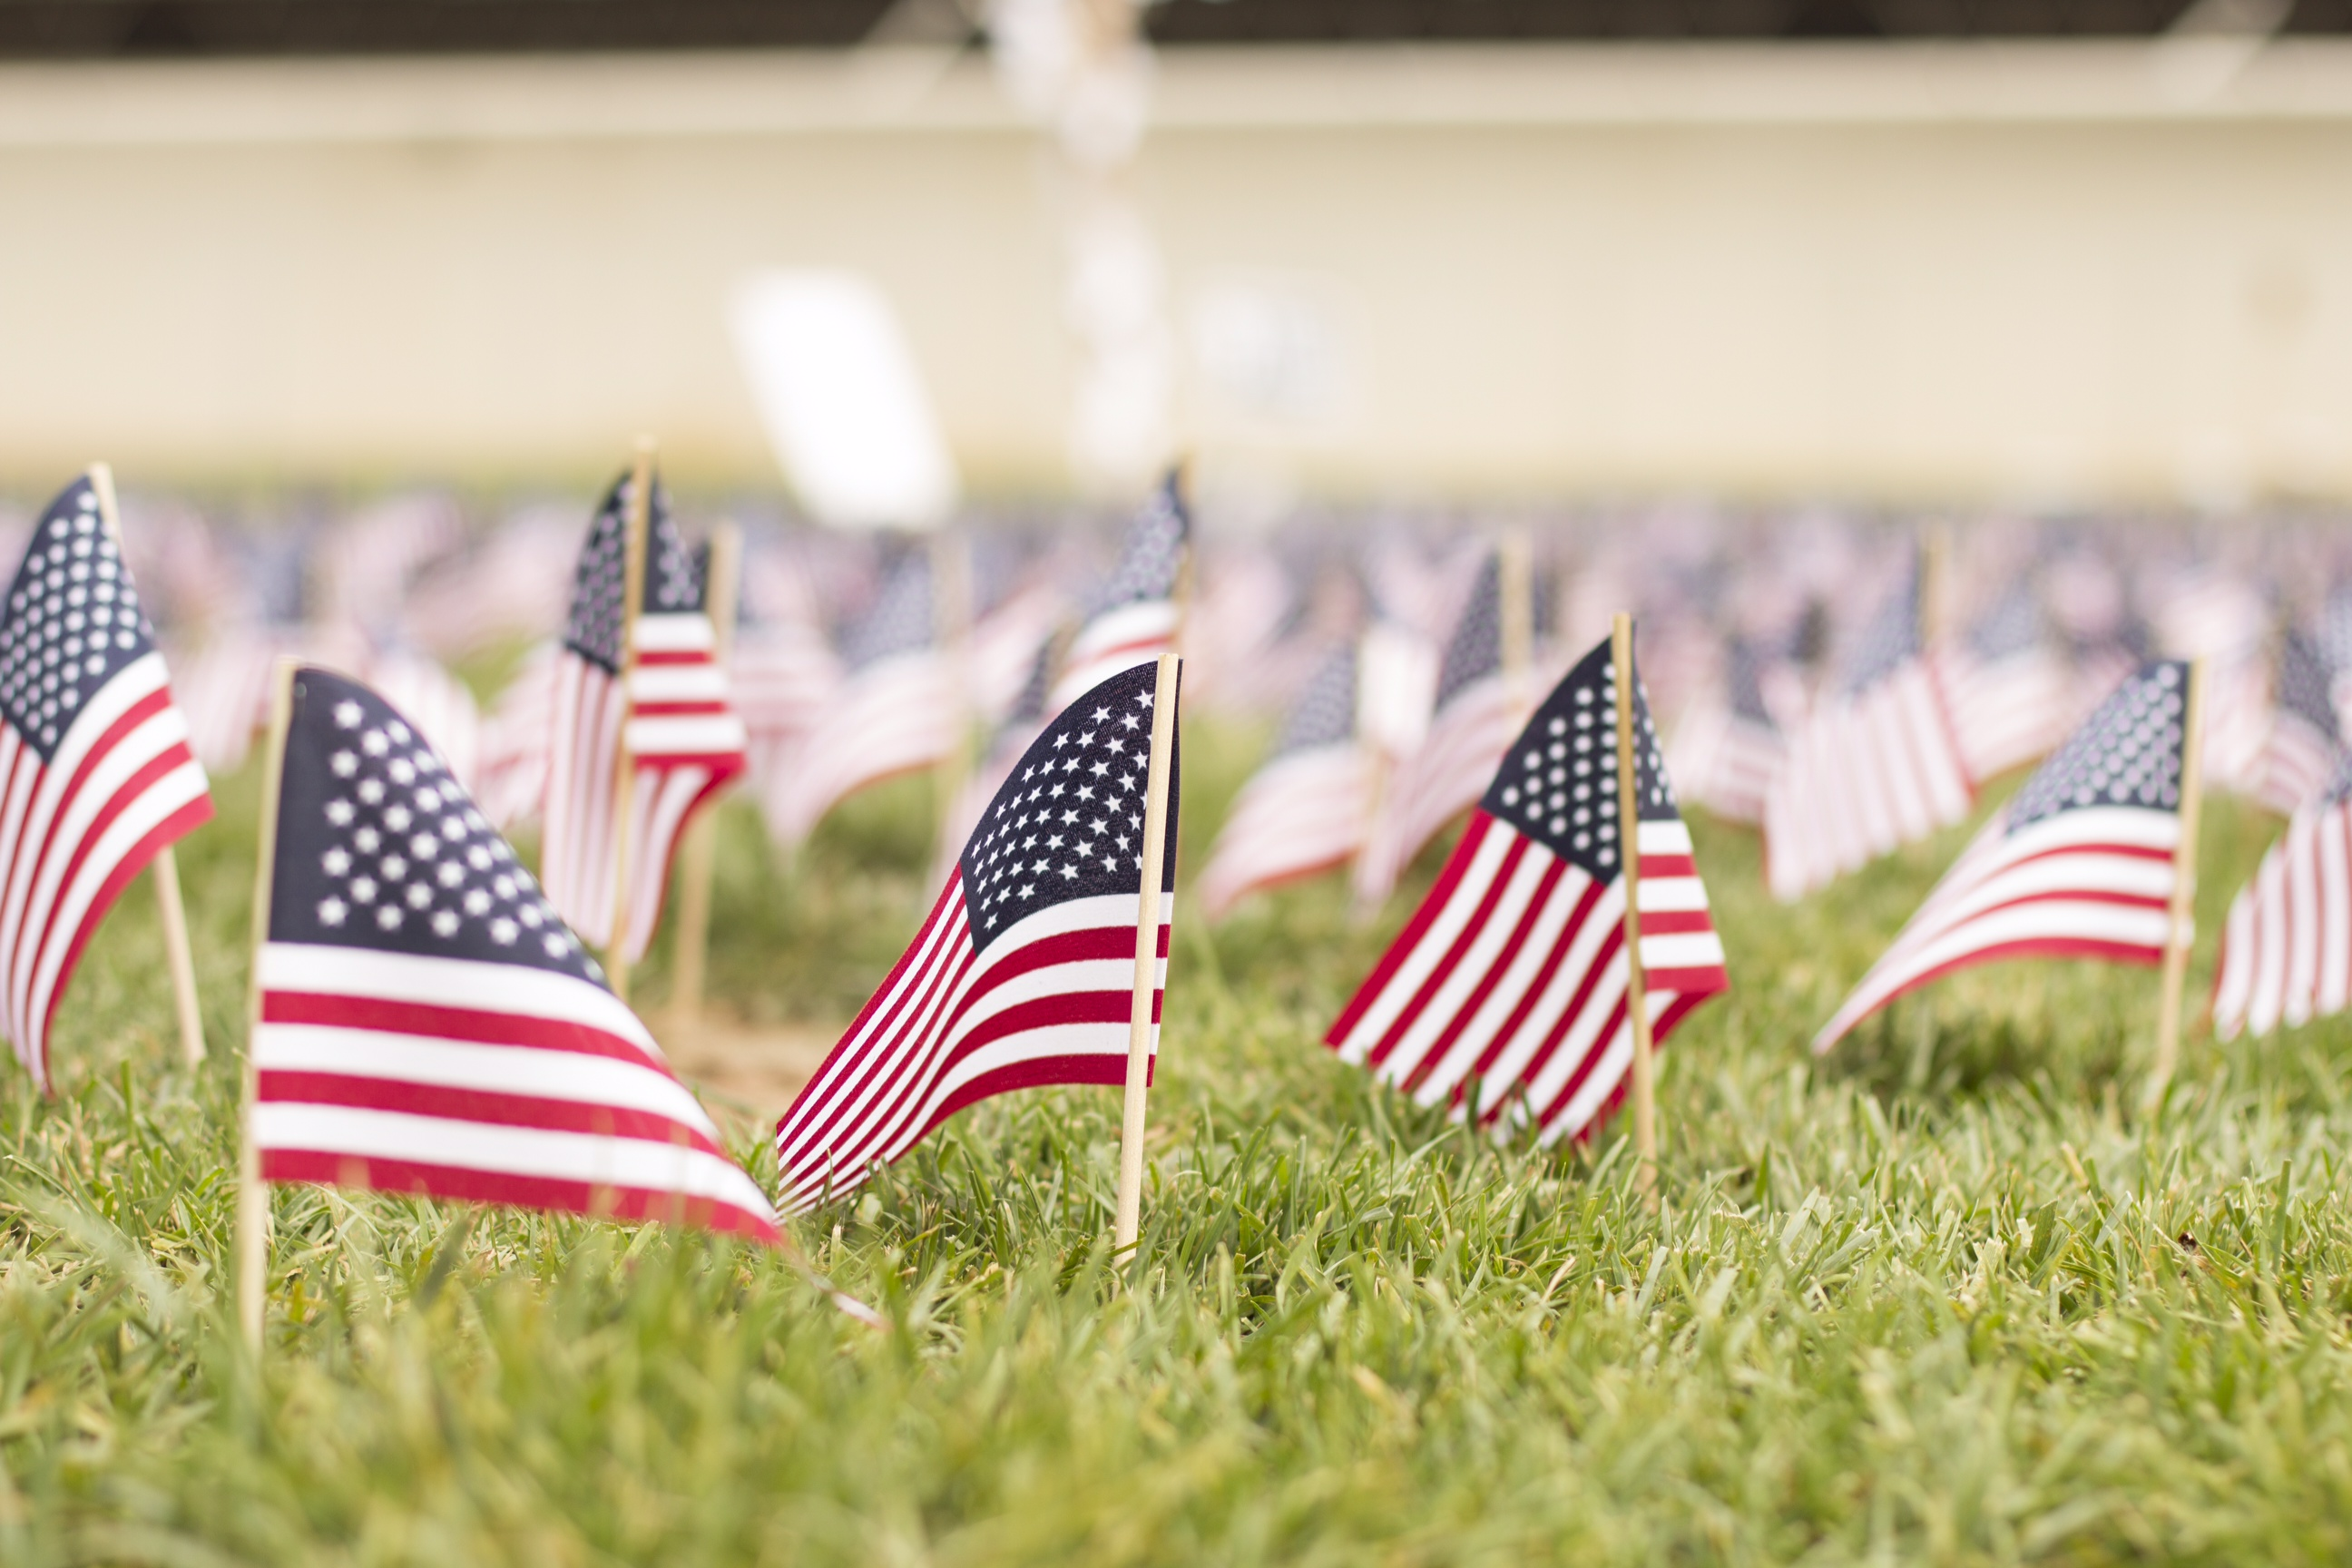 Each American flag represented one life lost in the tragedy.  Photo credit: RJ Goodwin